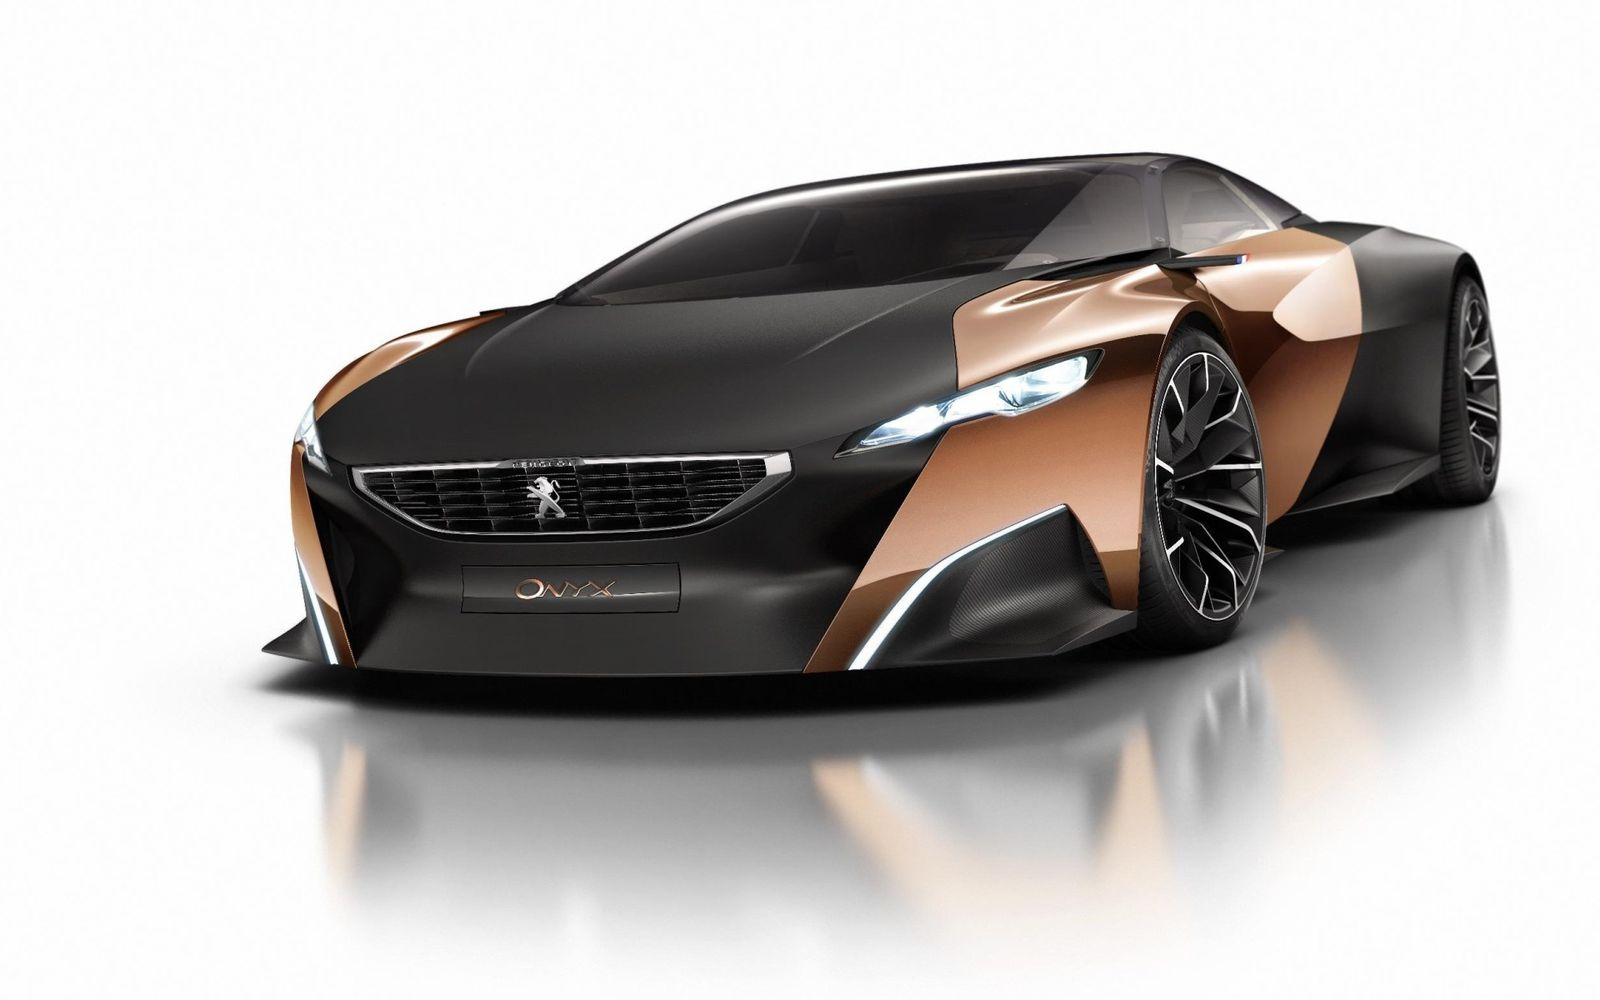 PEUGEOT ONYX, THE MOST BEAUTIFUL CAR - FCIA - French Cars In America